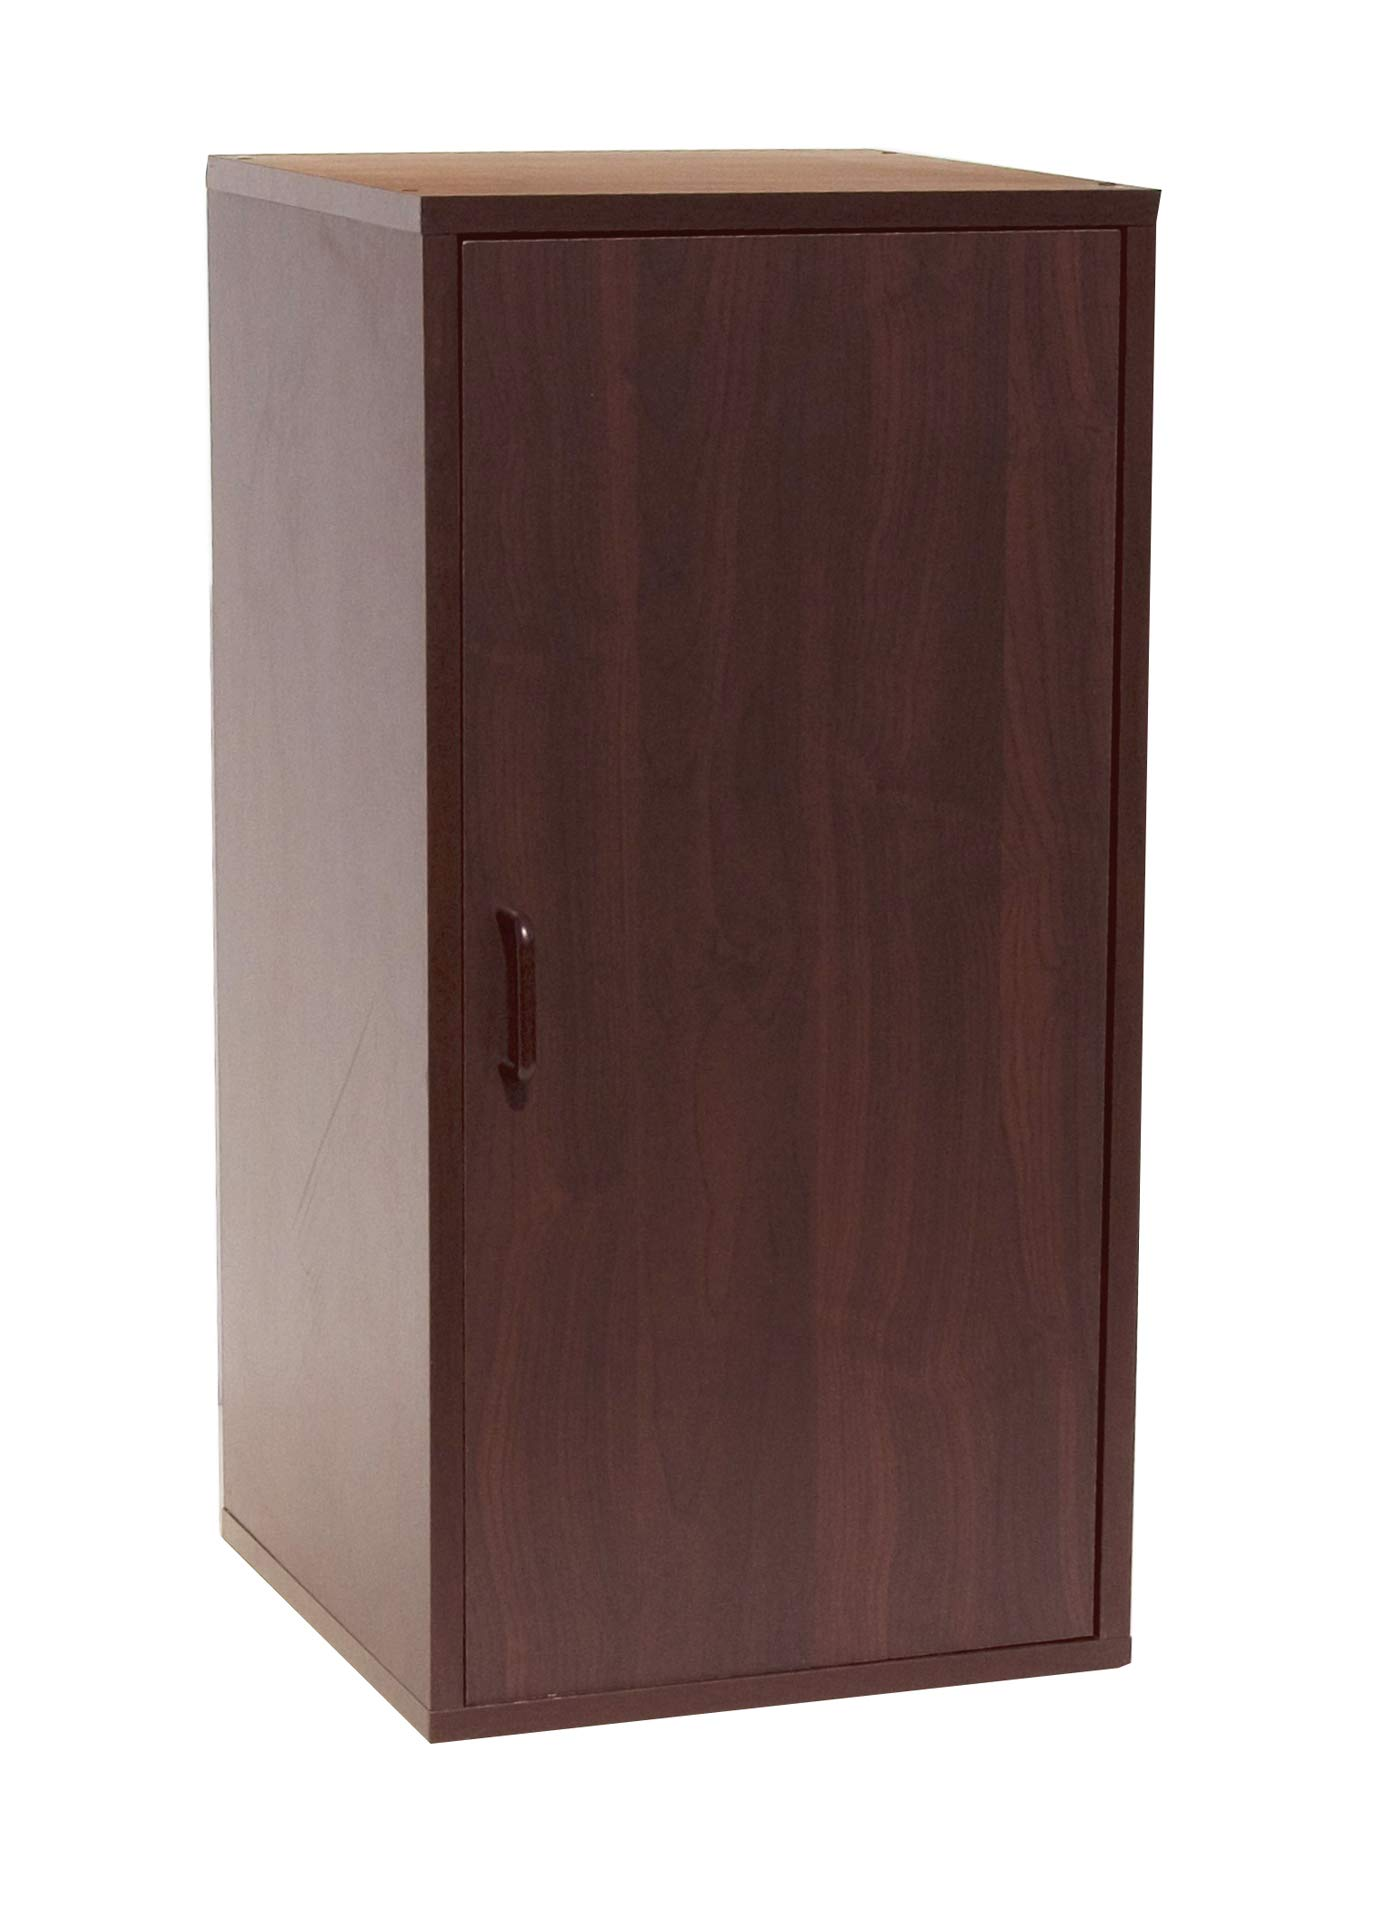 SKB family Organize It All 2 Section Double Storage Cube with Door by Neu Home, 30'' x 15'' x 12 lbs